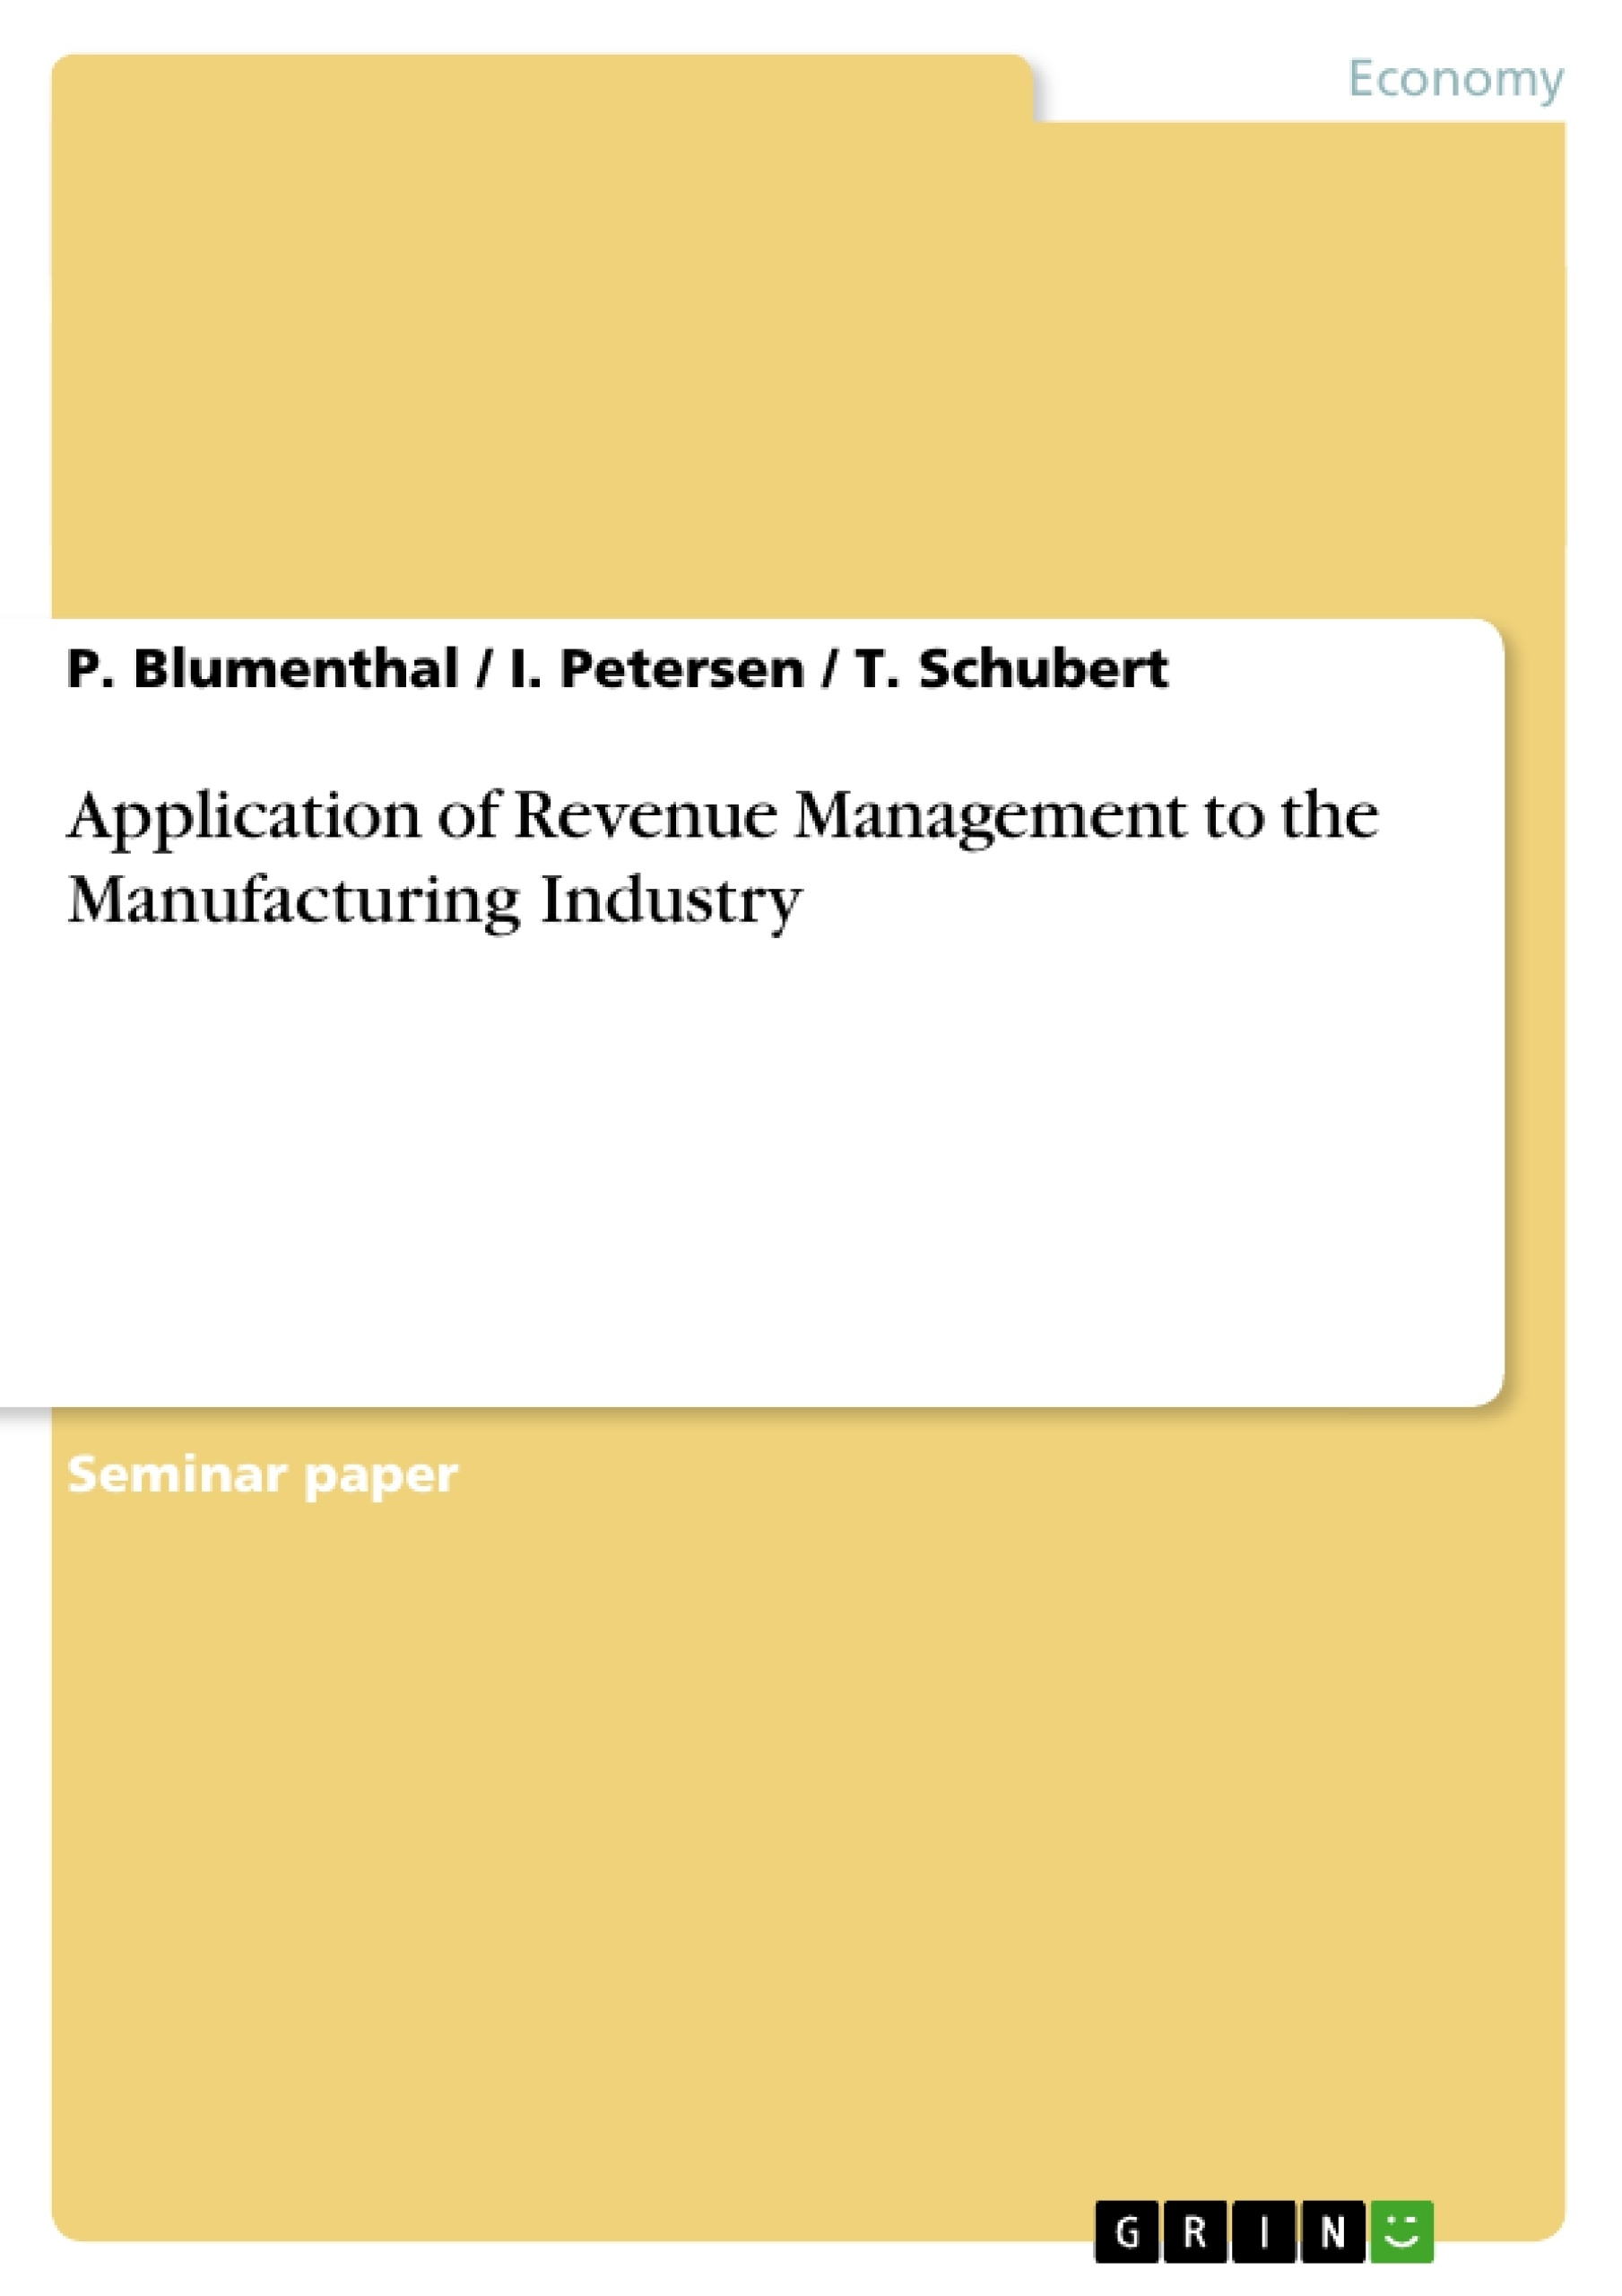 Title: Application of Revenue Management to the Manufacturing Industry